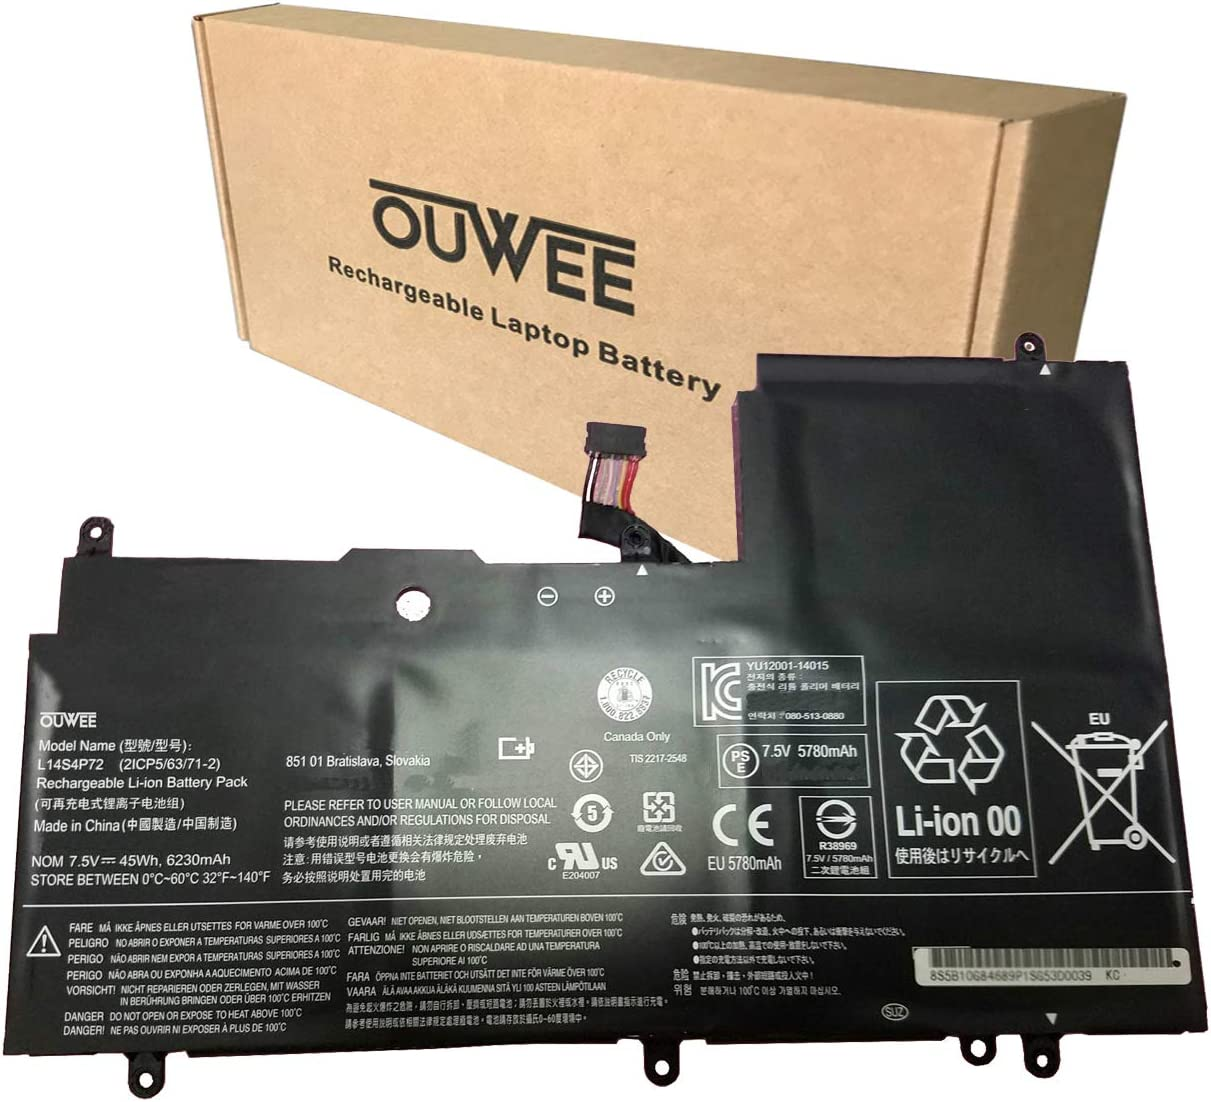 OUWEE L14S4P72 Laptop Battery Compatible with Lenovo Yoga 3 14inch Yoga 3-1470 IdeaPad Yoga 700-14ISK Series Notebook 5B10K10224 L14M4P72 5B10K10226 5B10G75095 5B10G84689 7.5V 45Wh 6230mAh